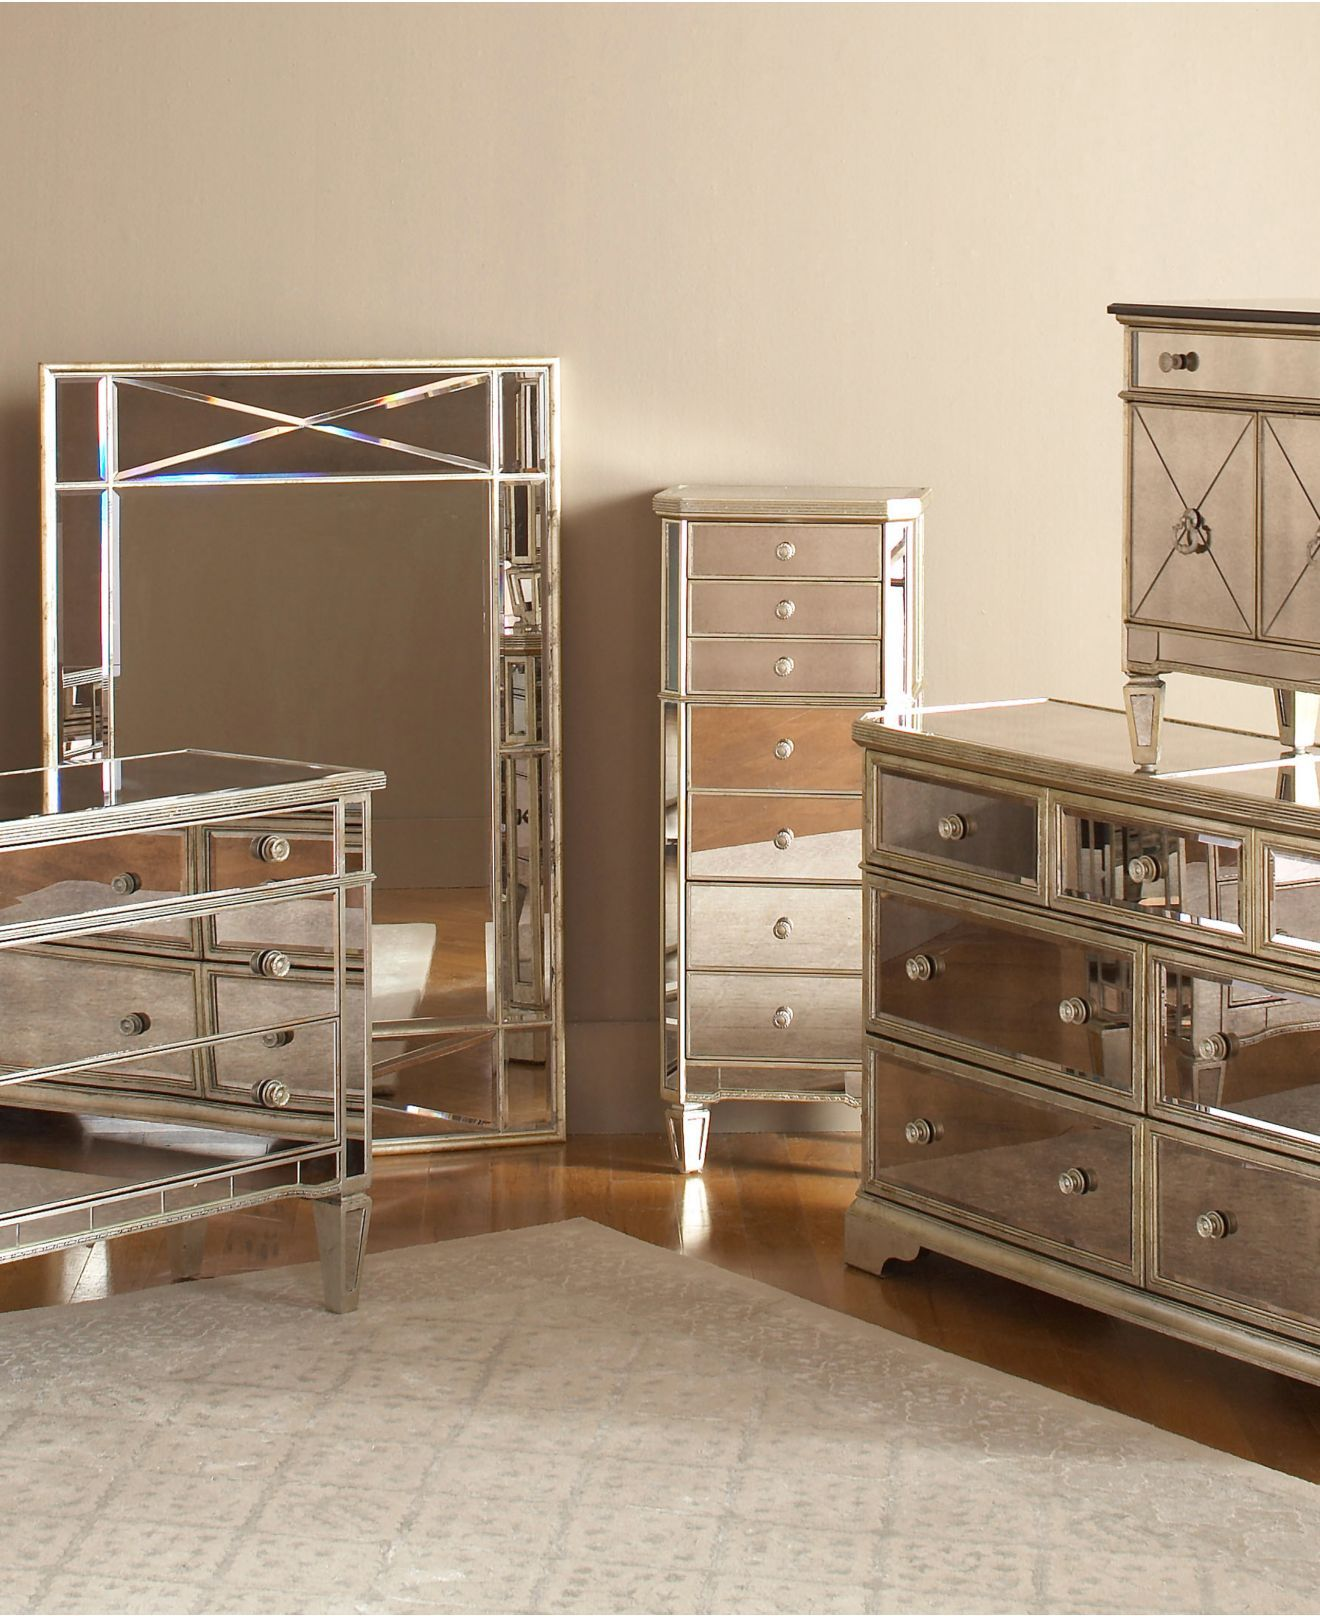 Marais Bedroom Furniture Sets   Pieces   furniture   Macy s. Marais Mirrored Furniture Collection   Furniture sets  Mirrored